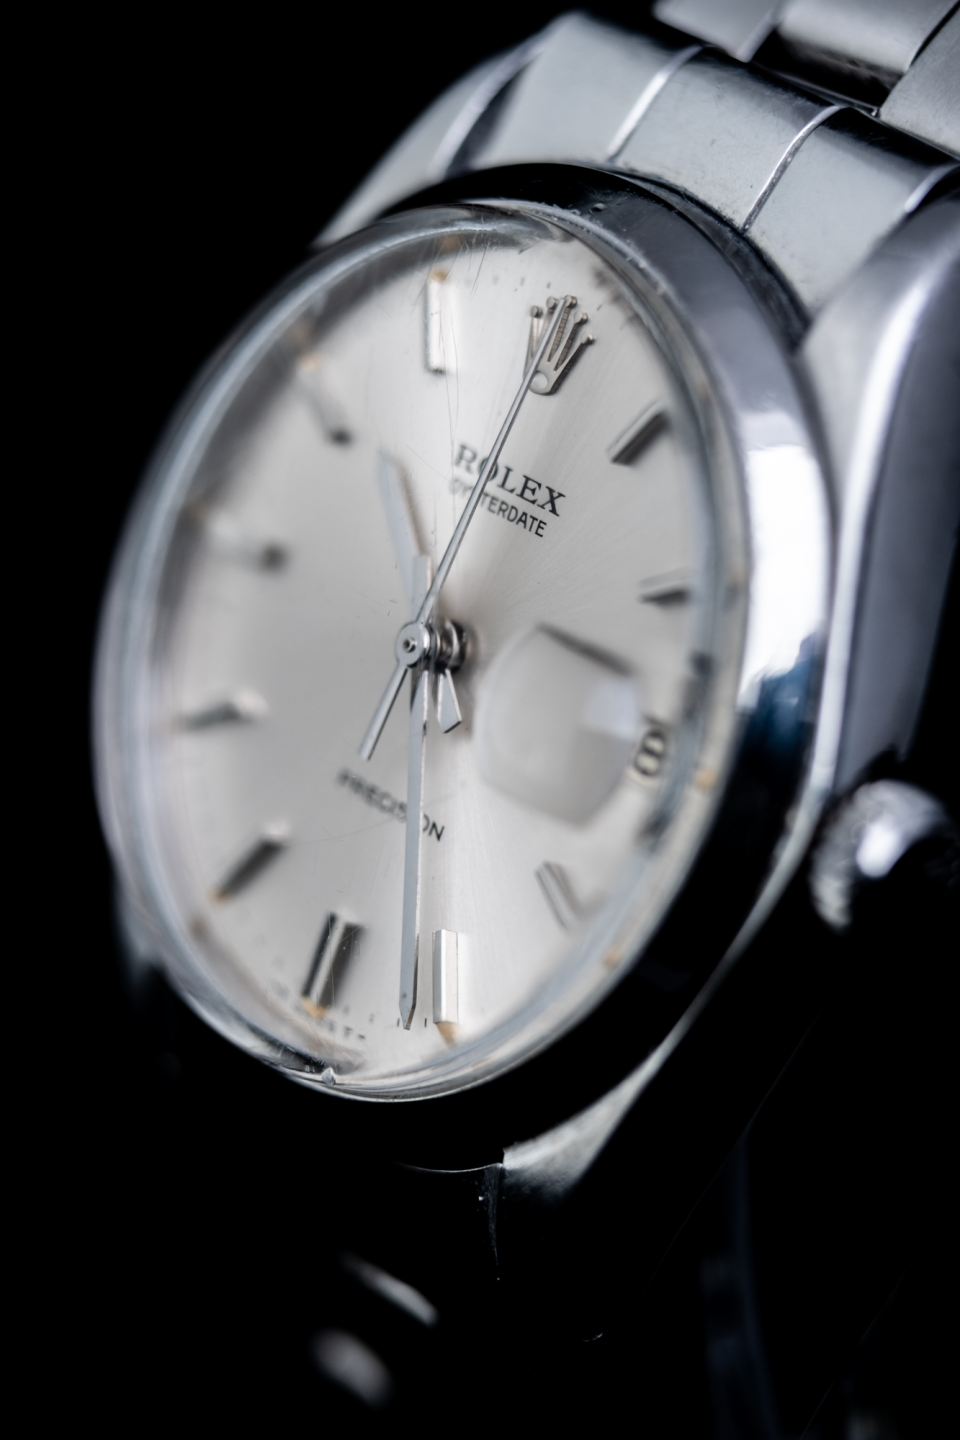 Selective focus shows the center detail of the watch face. Rolex Oysterdate Precision Ref 6694.